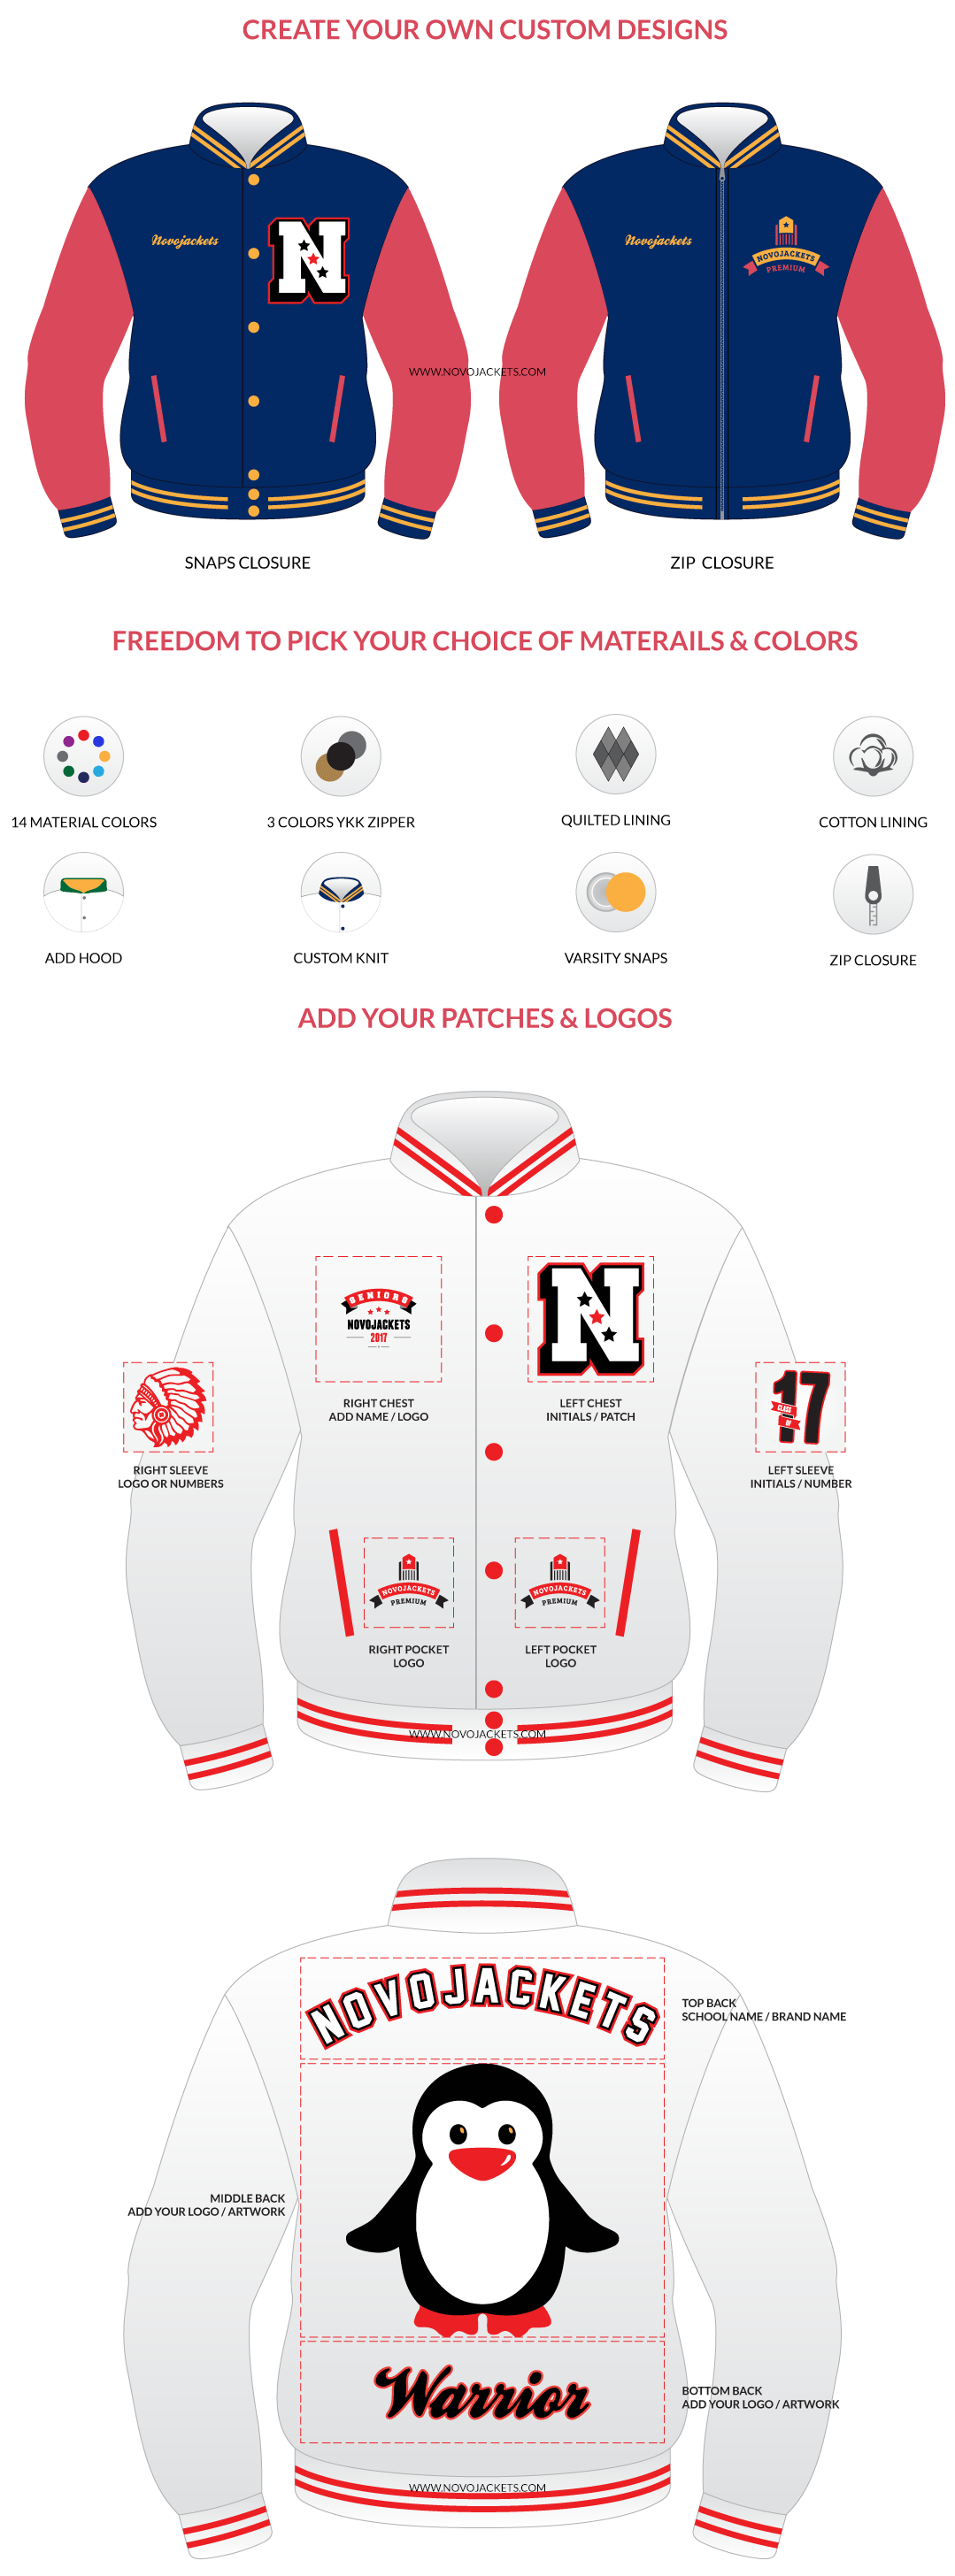 customize-letterman-jackets-varsity-jacket-bomber-jacket